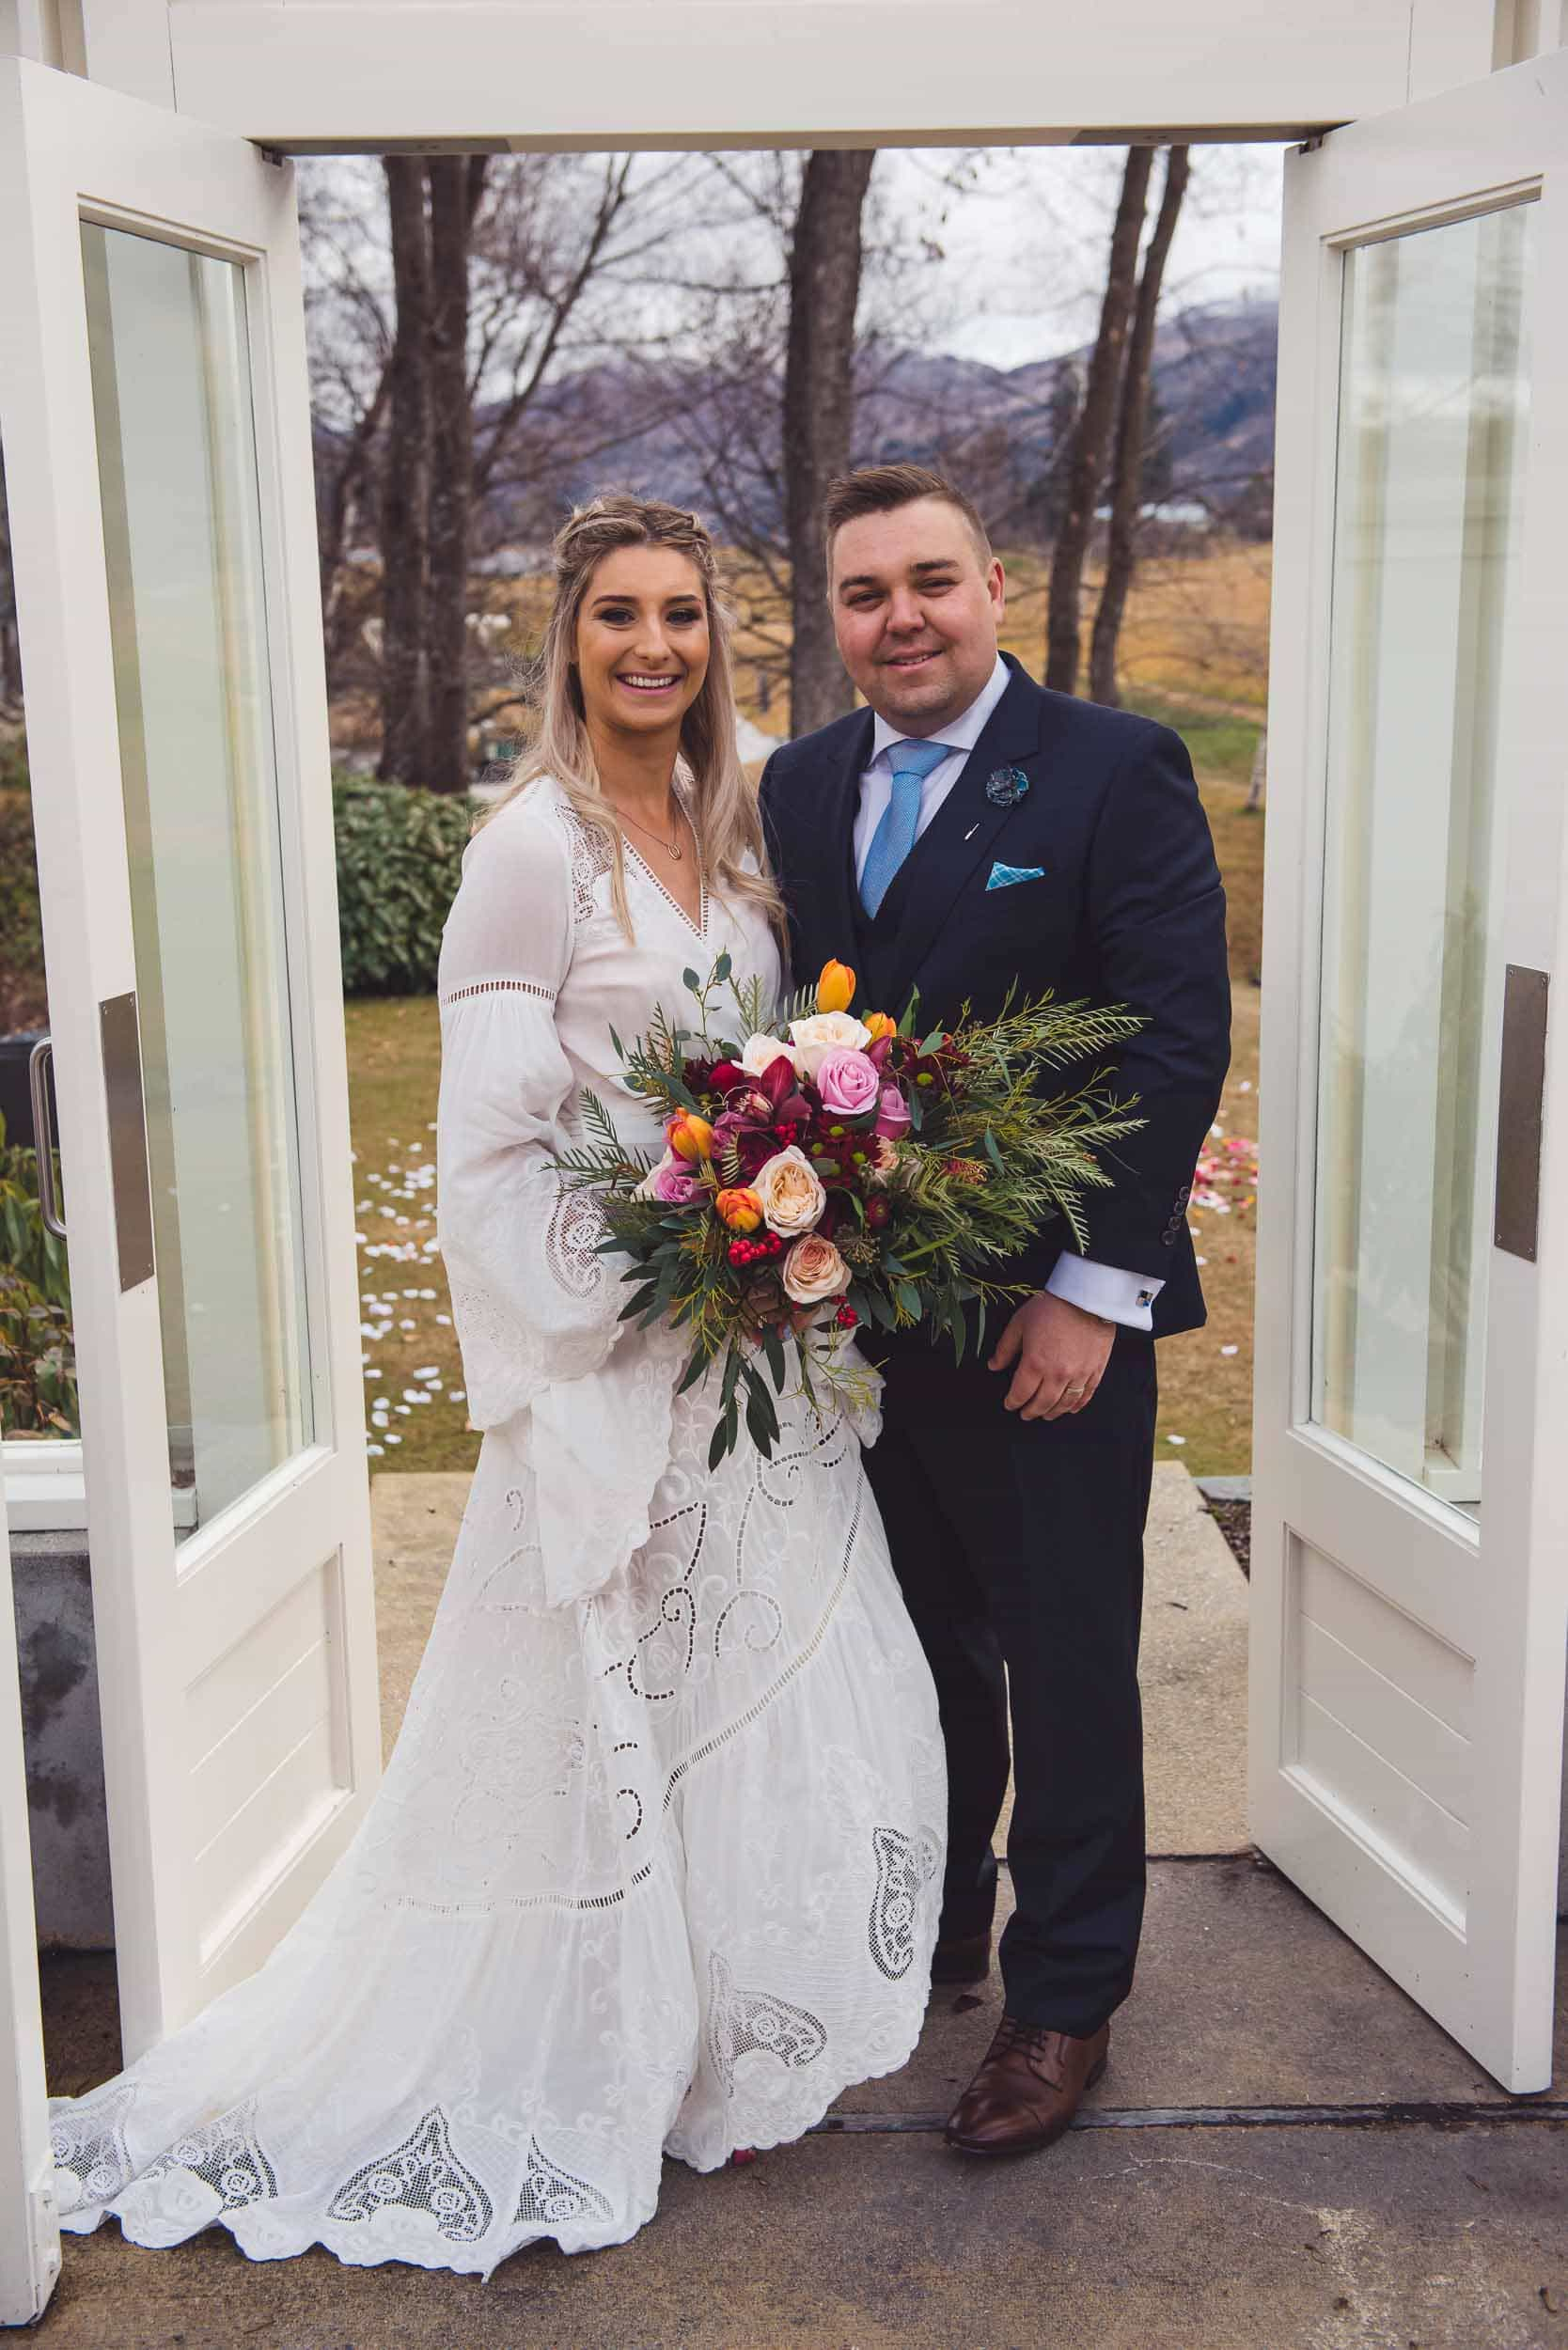 Millbrook resort winter wedding secret garden ceremony